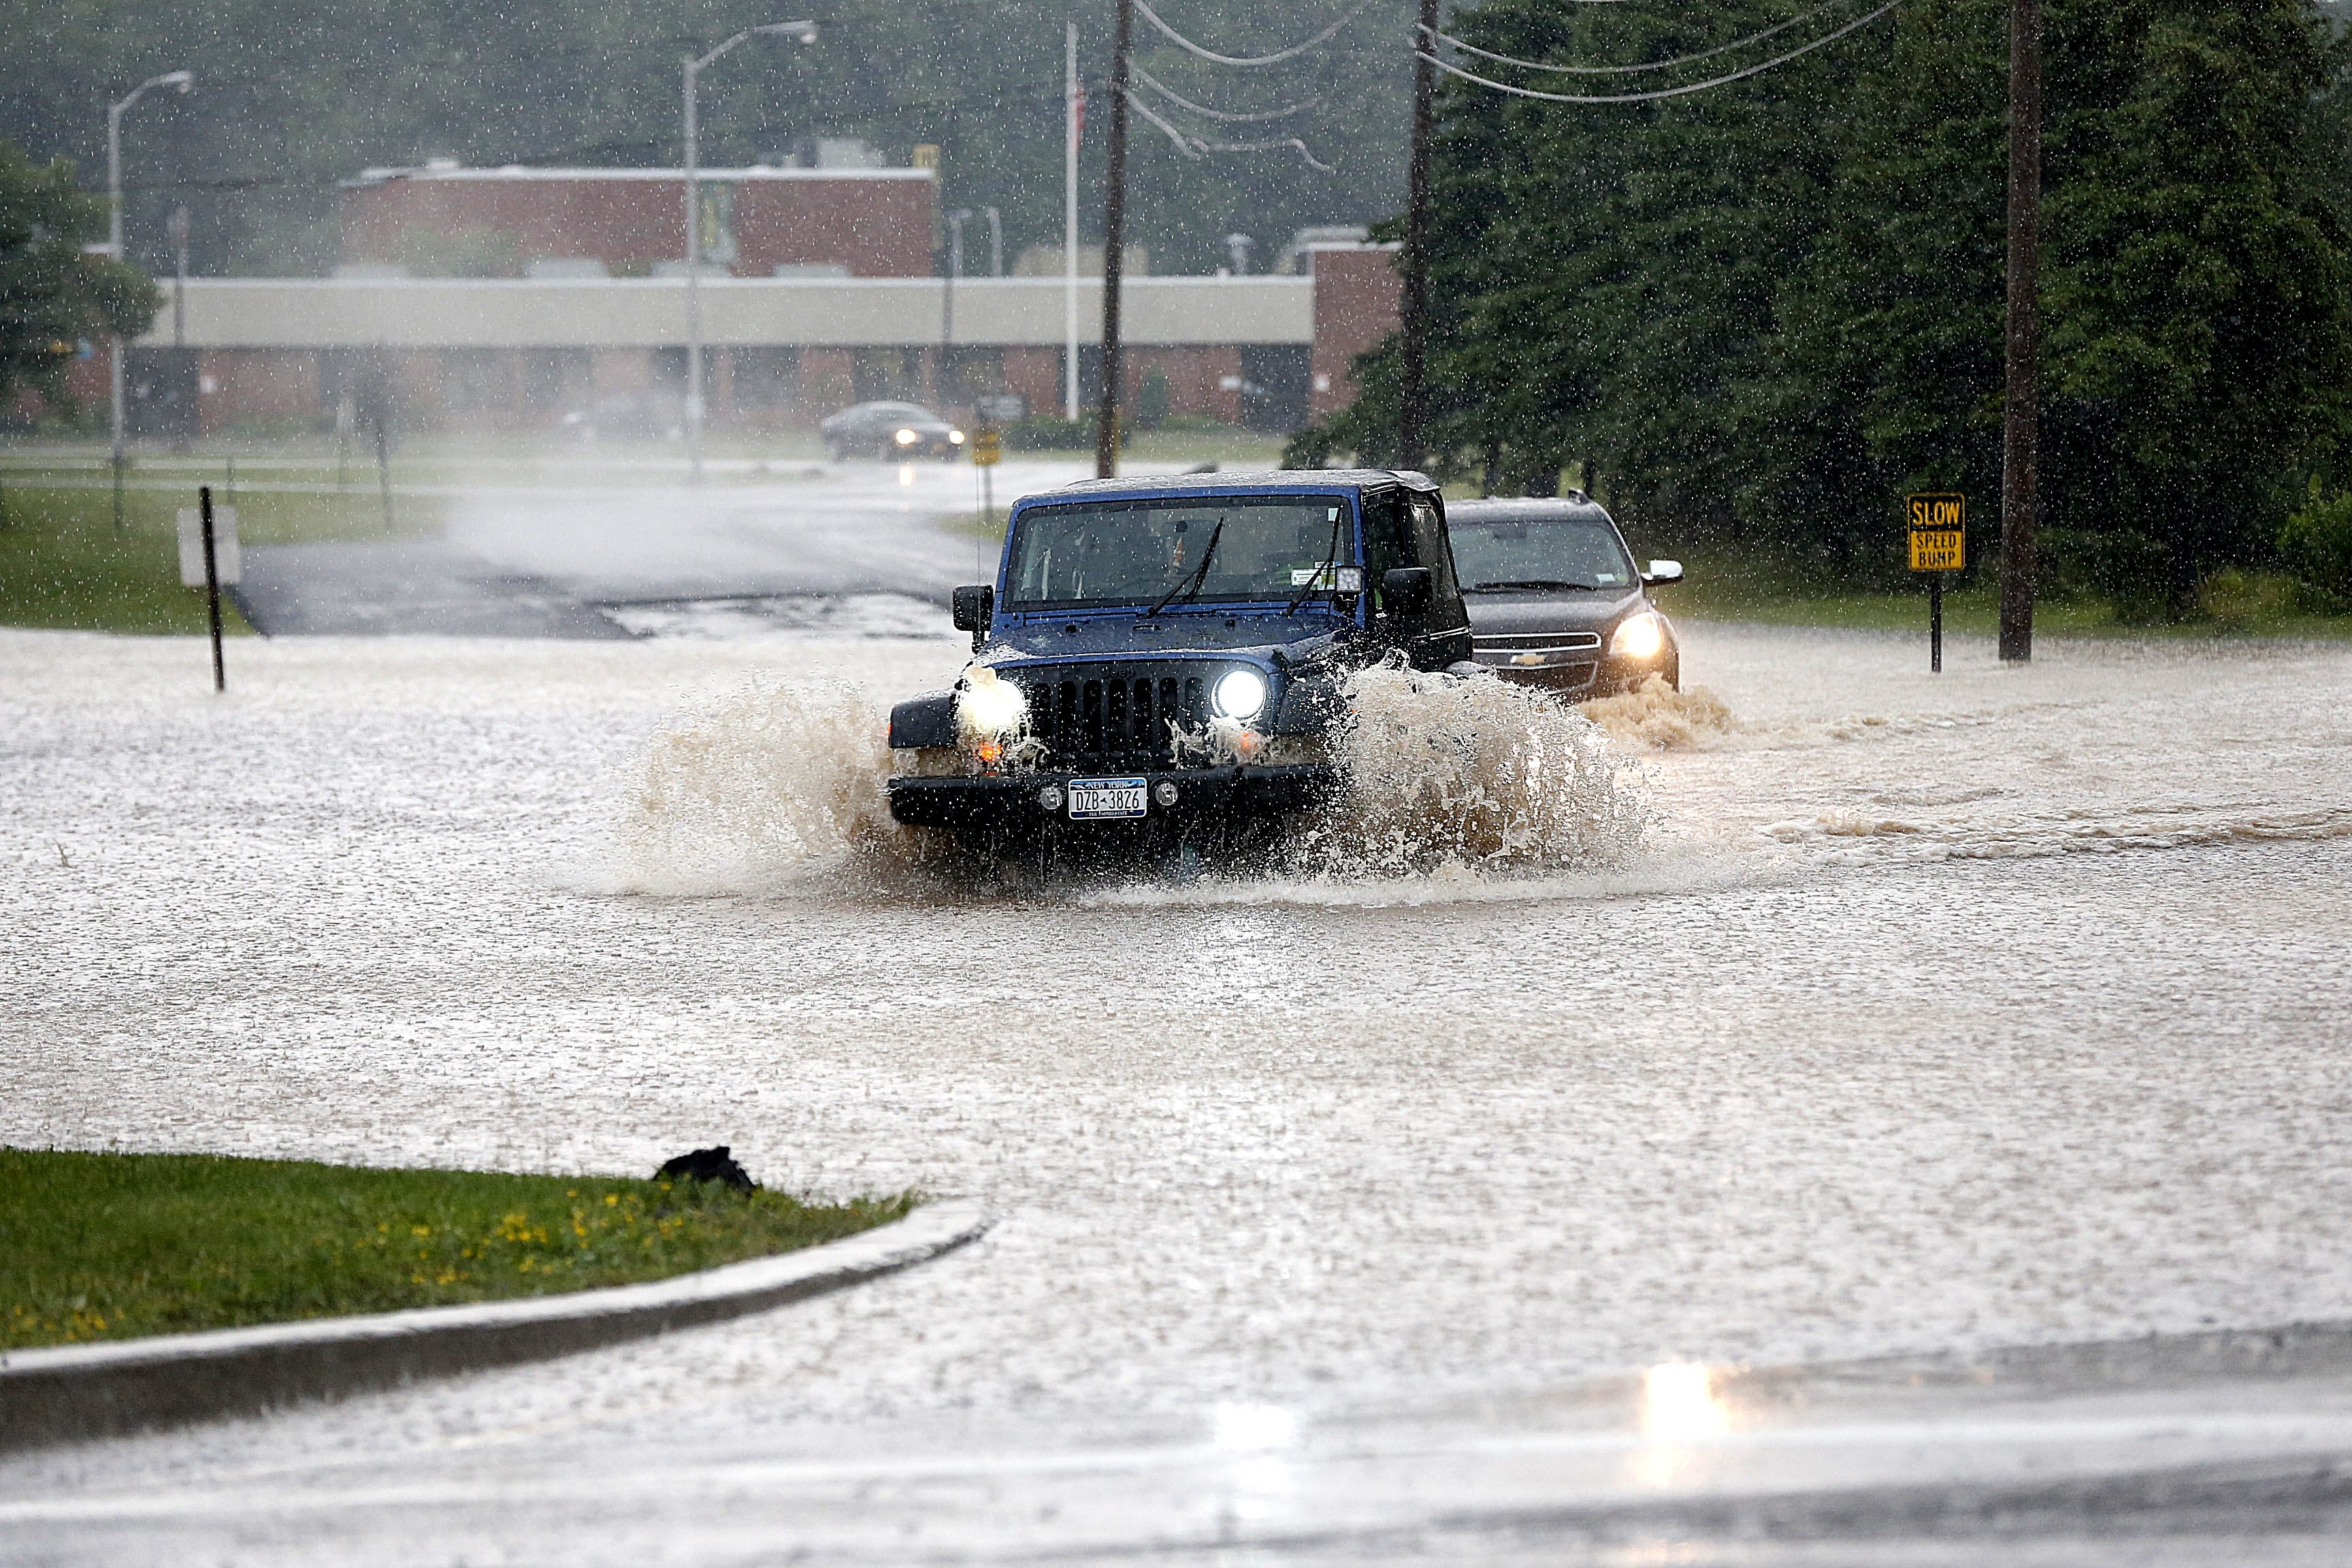 Having trouble finding the road, motorists take their chances negotiating the flooded road outside the Orleans/Niagara BOCES administrative building in Sanborn on Wednesday.